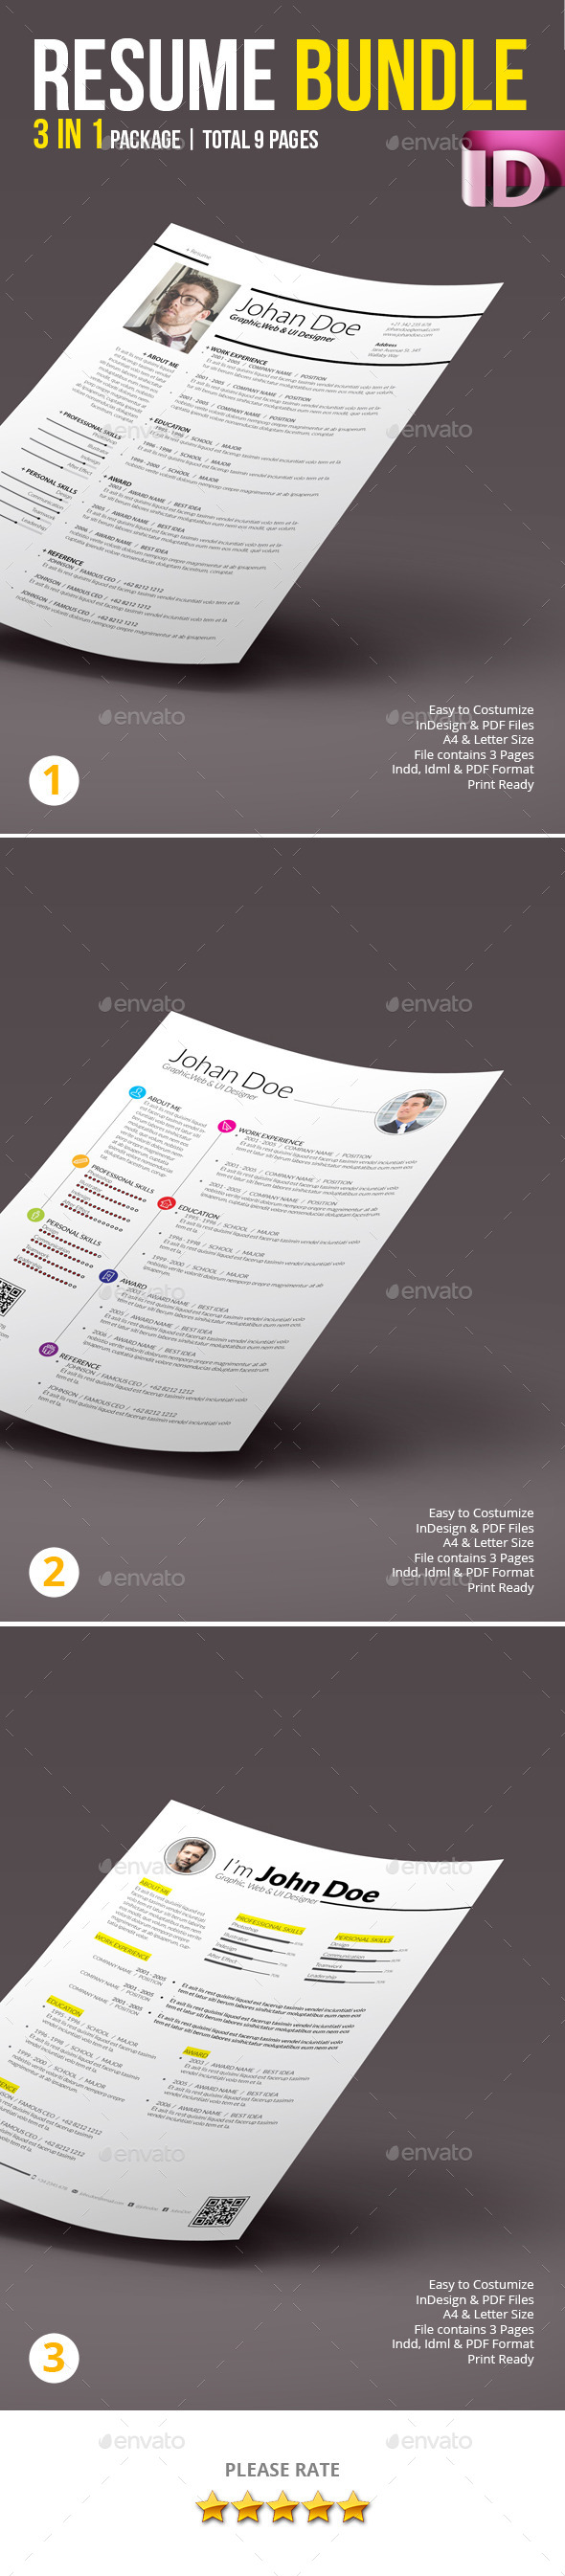 Resume Bundle 01 - Resumes Stationery